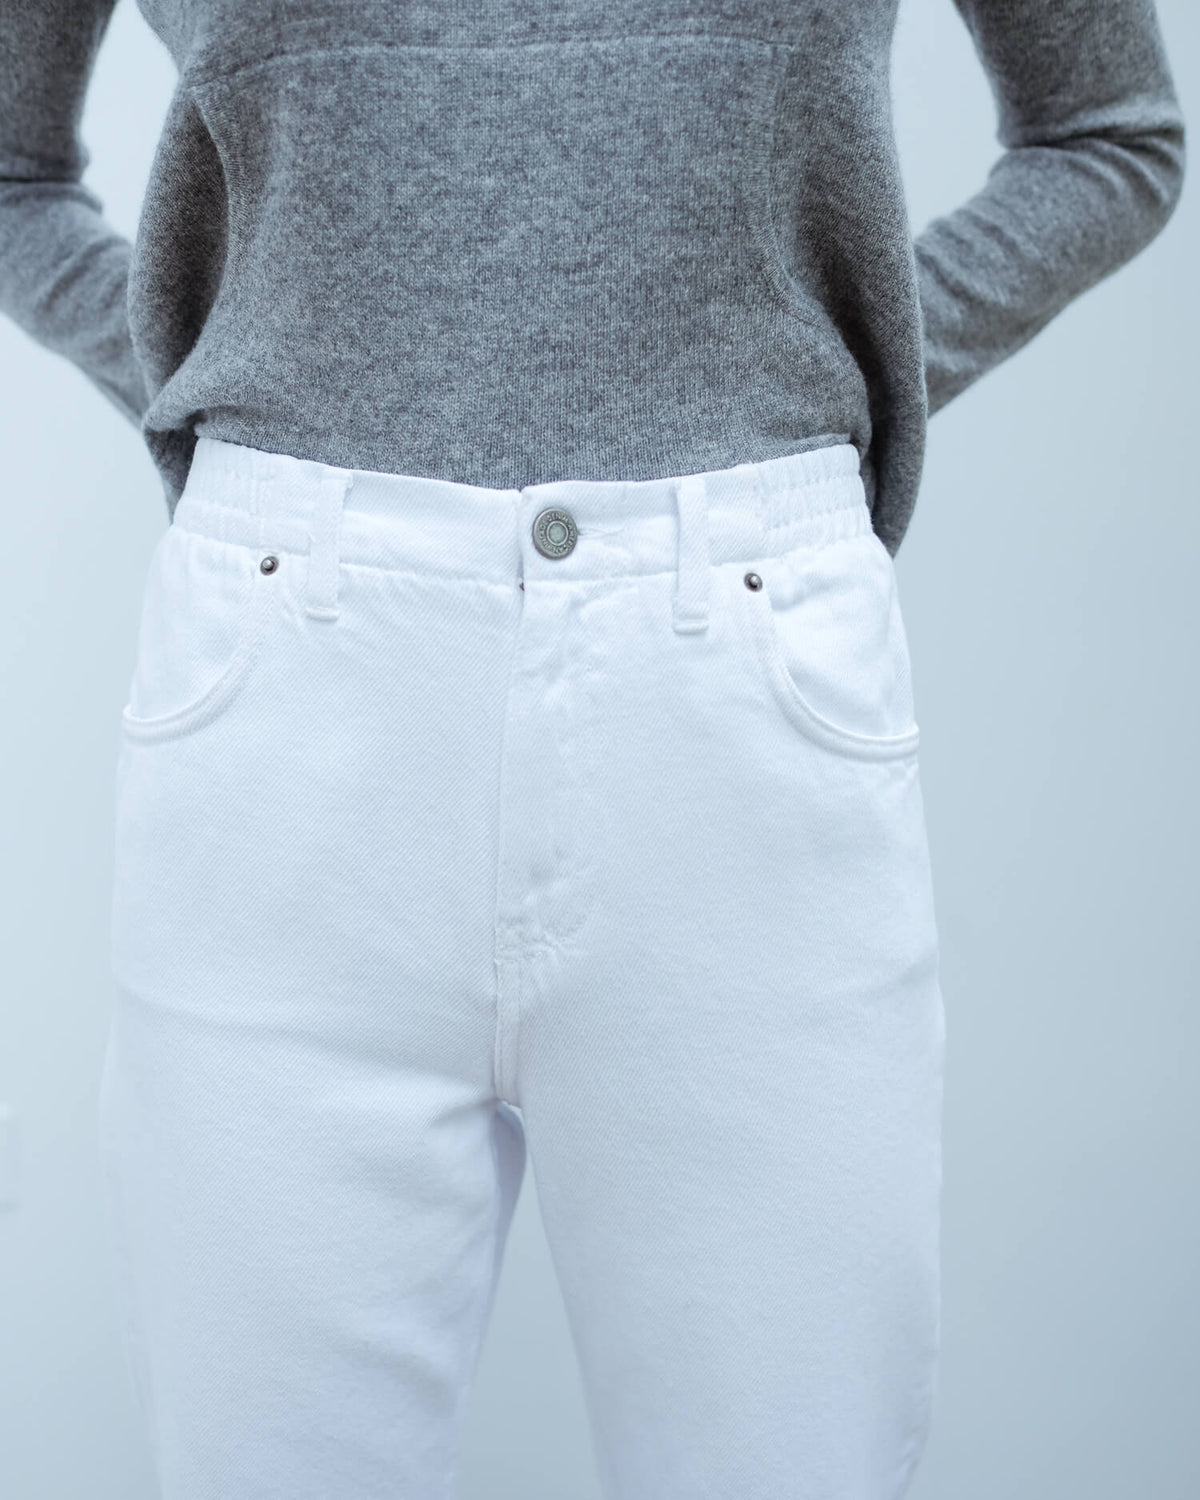 AV TINE173 5 pocket jean in white